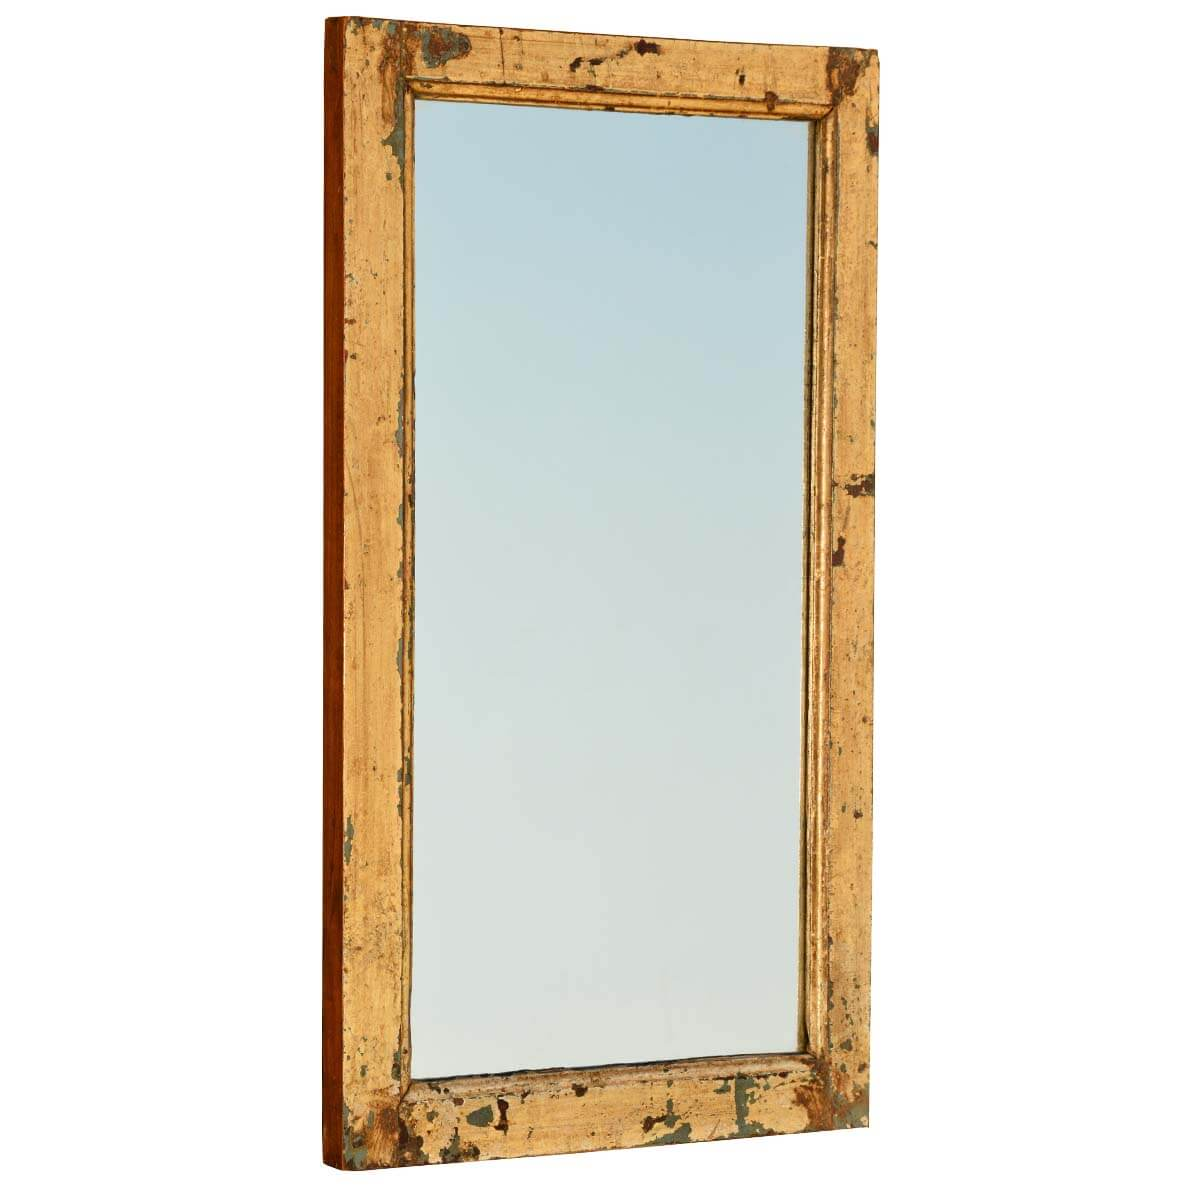 Rustic reclaimed wood distressed rectangular framed mirror for Rustic mirror